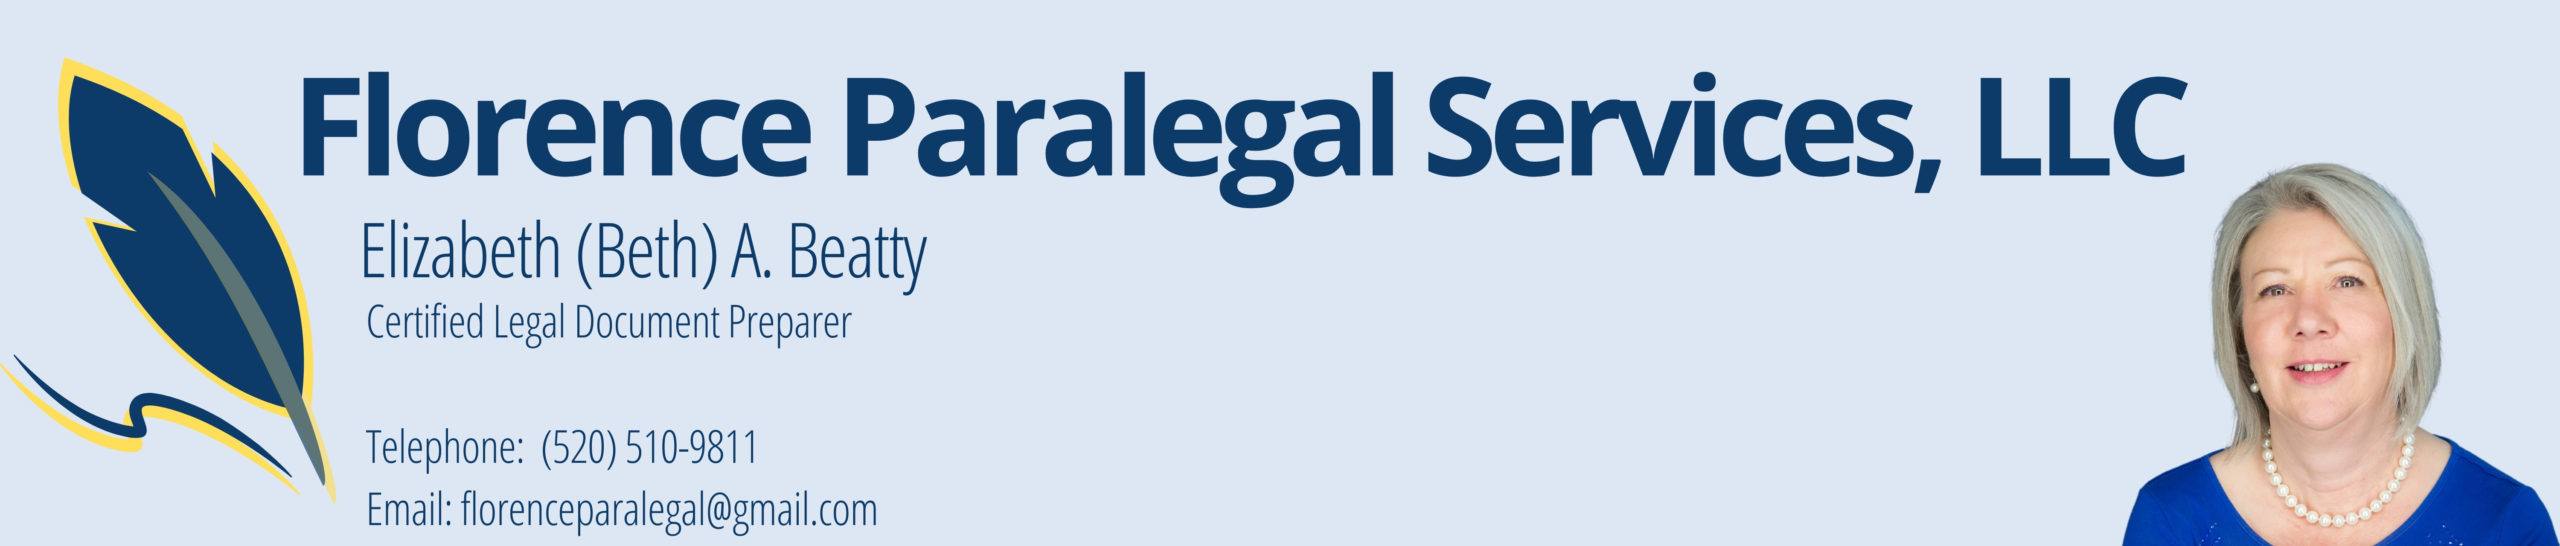 Florence Paralegal Services, LLC